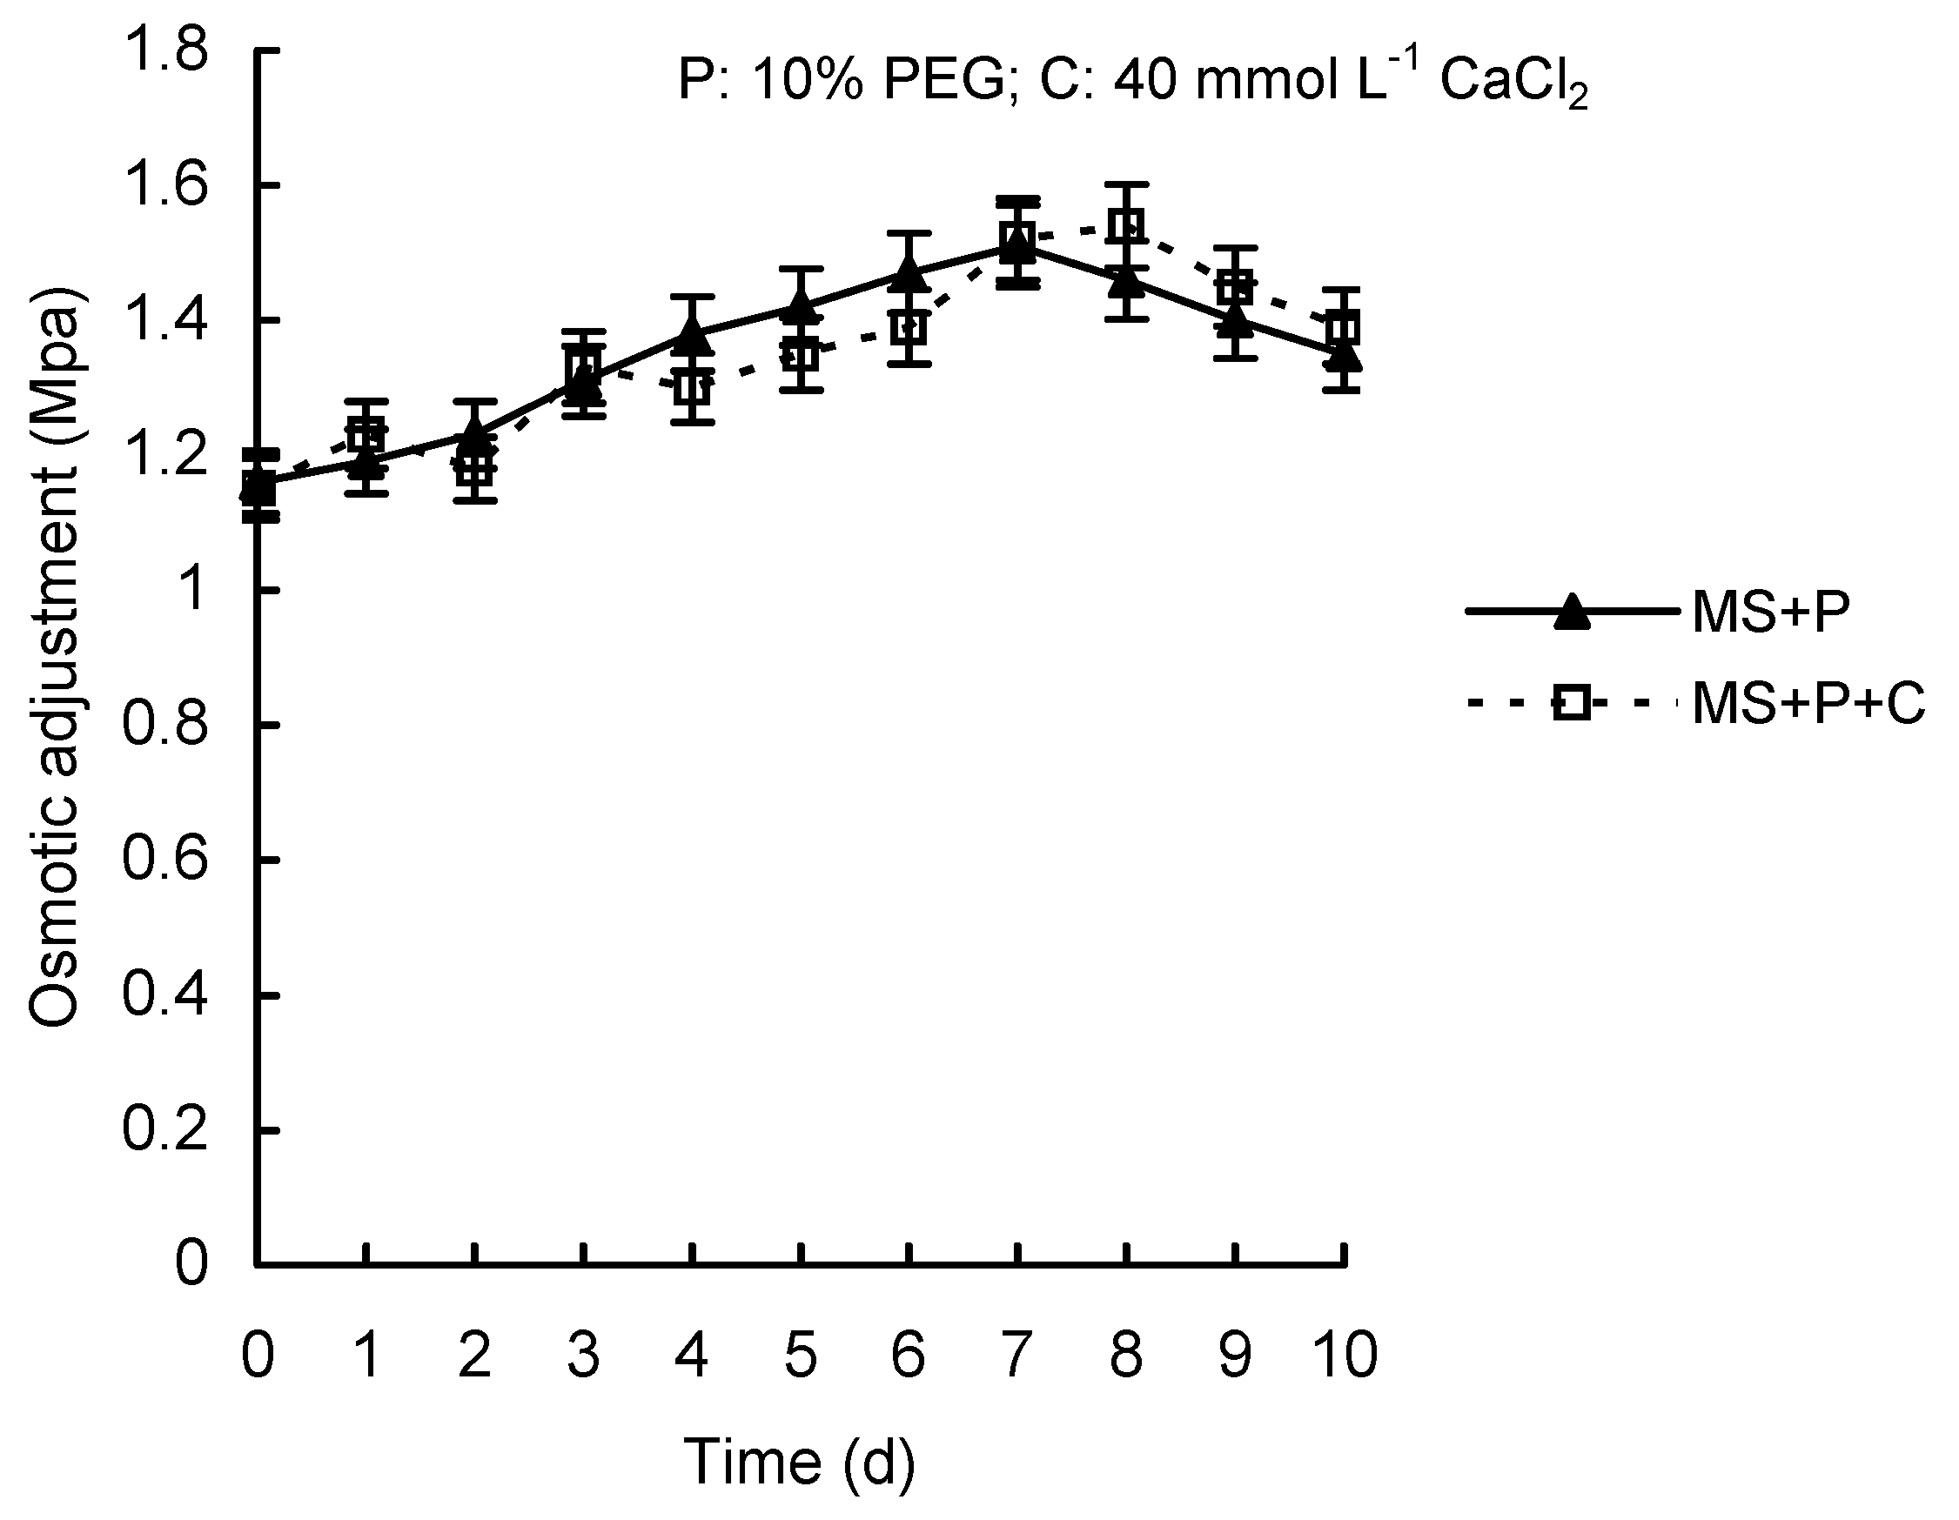 Application of external calcium in improving the PEG